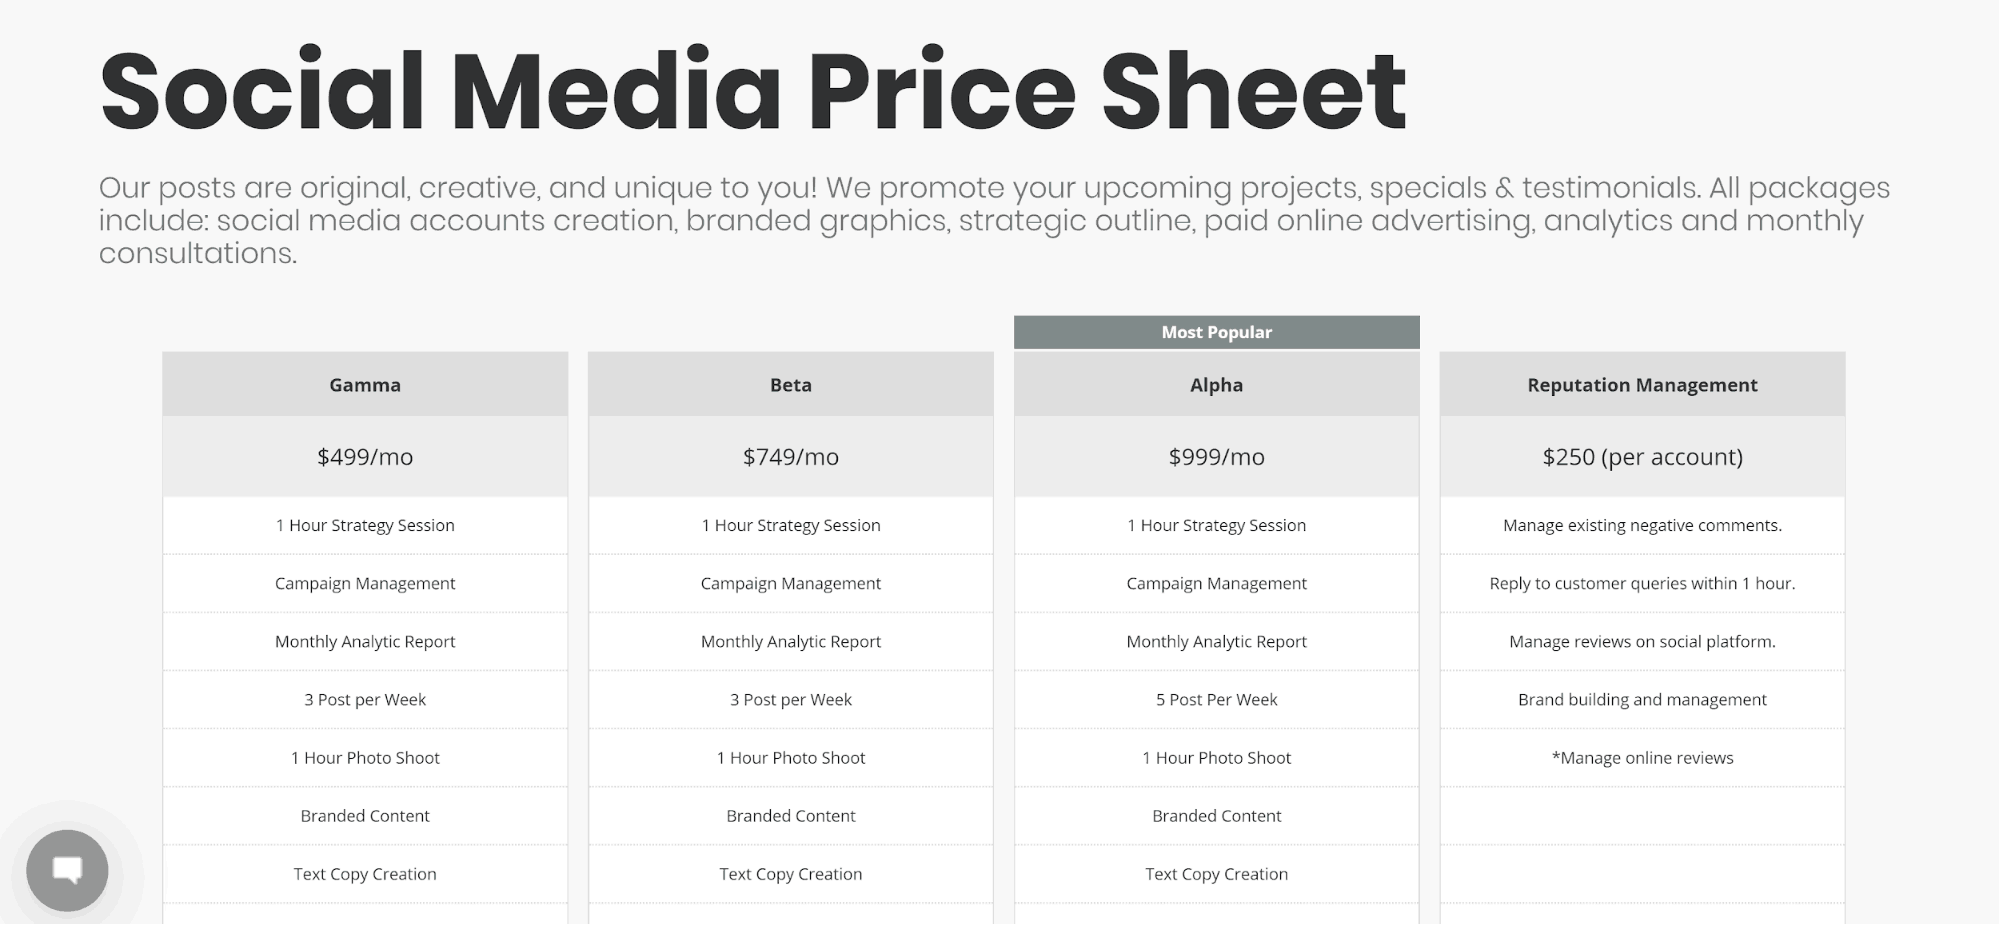 How Much to Charge for Social Media Management Media Price